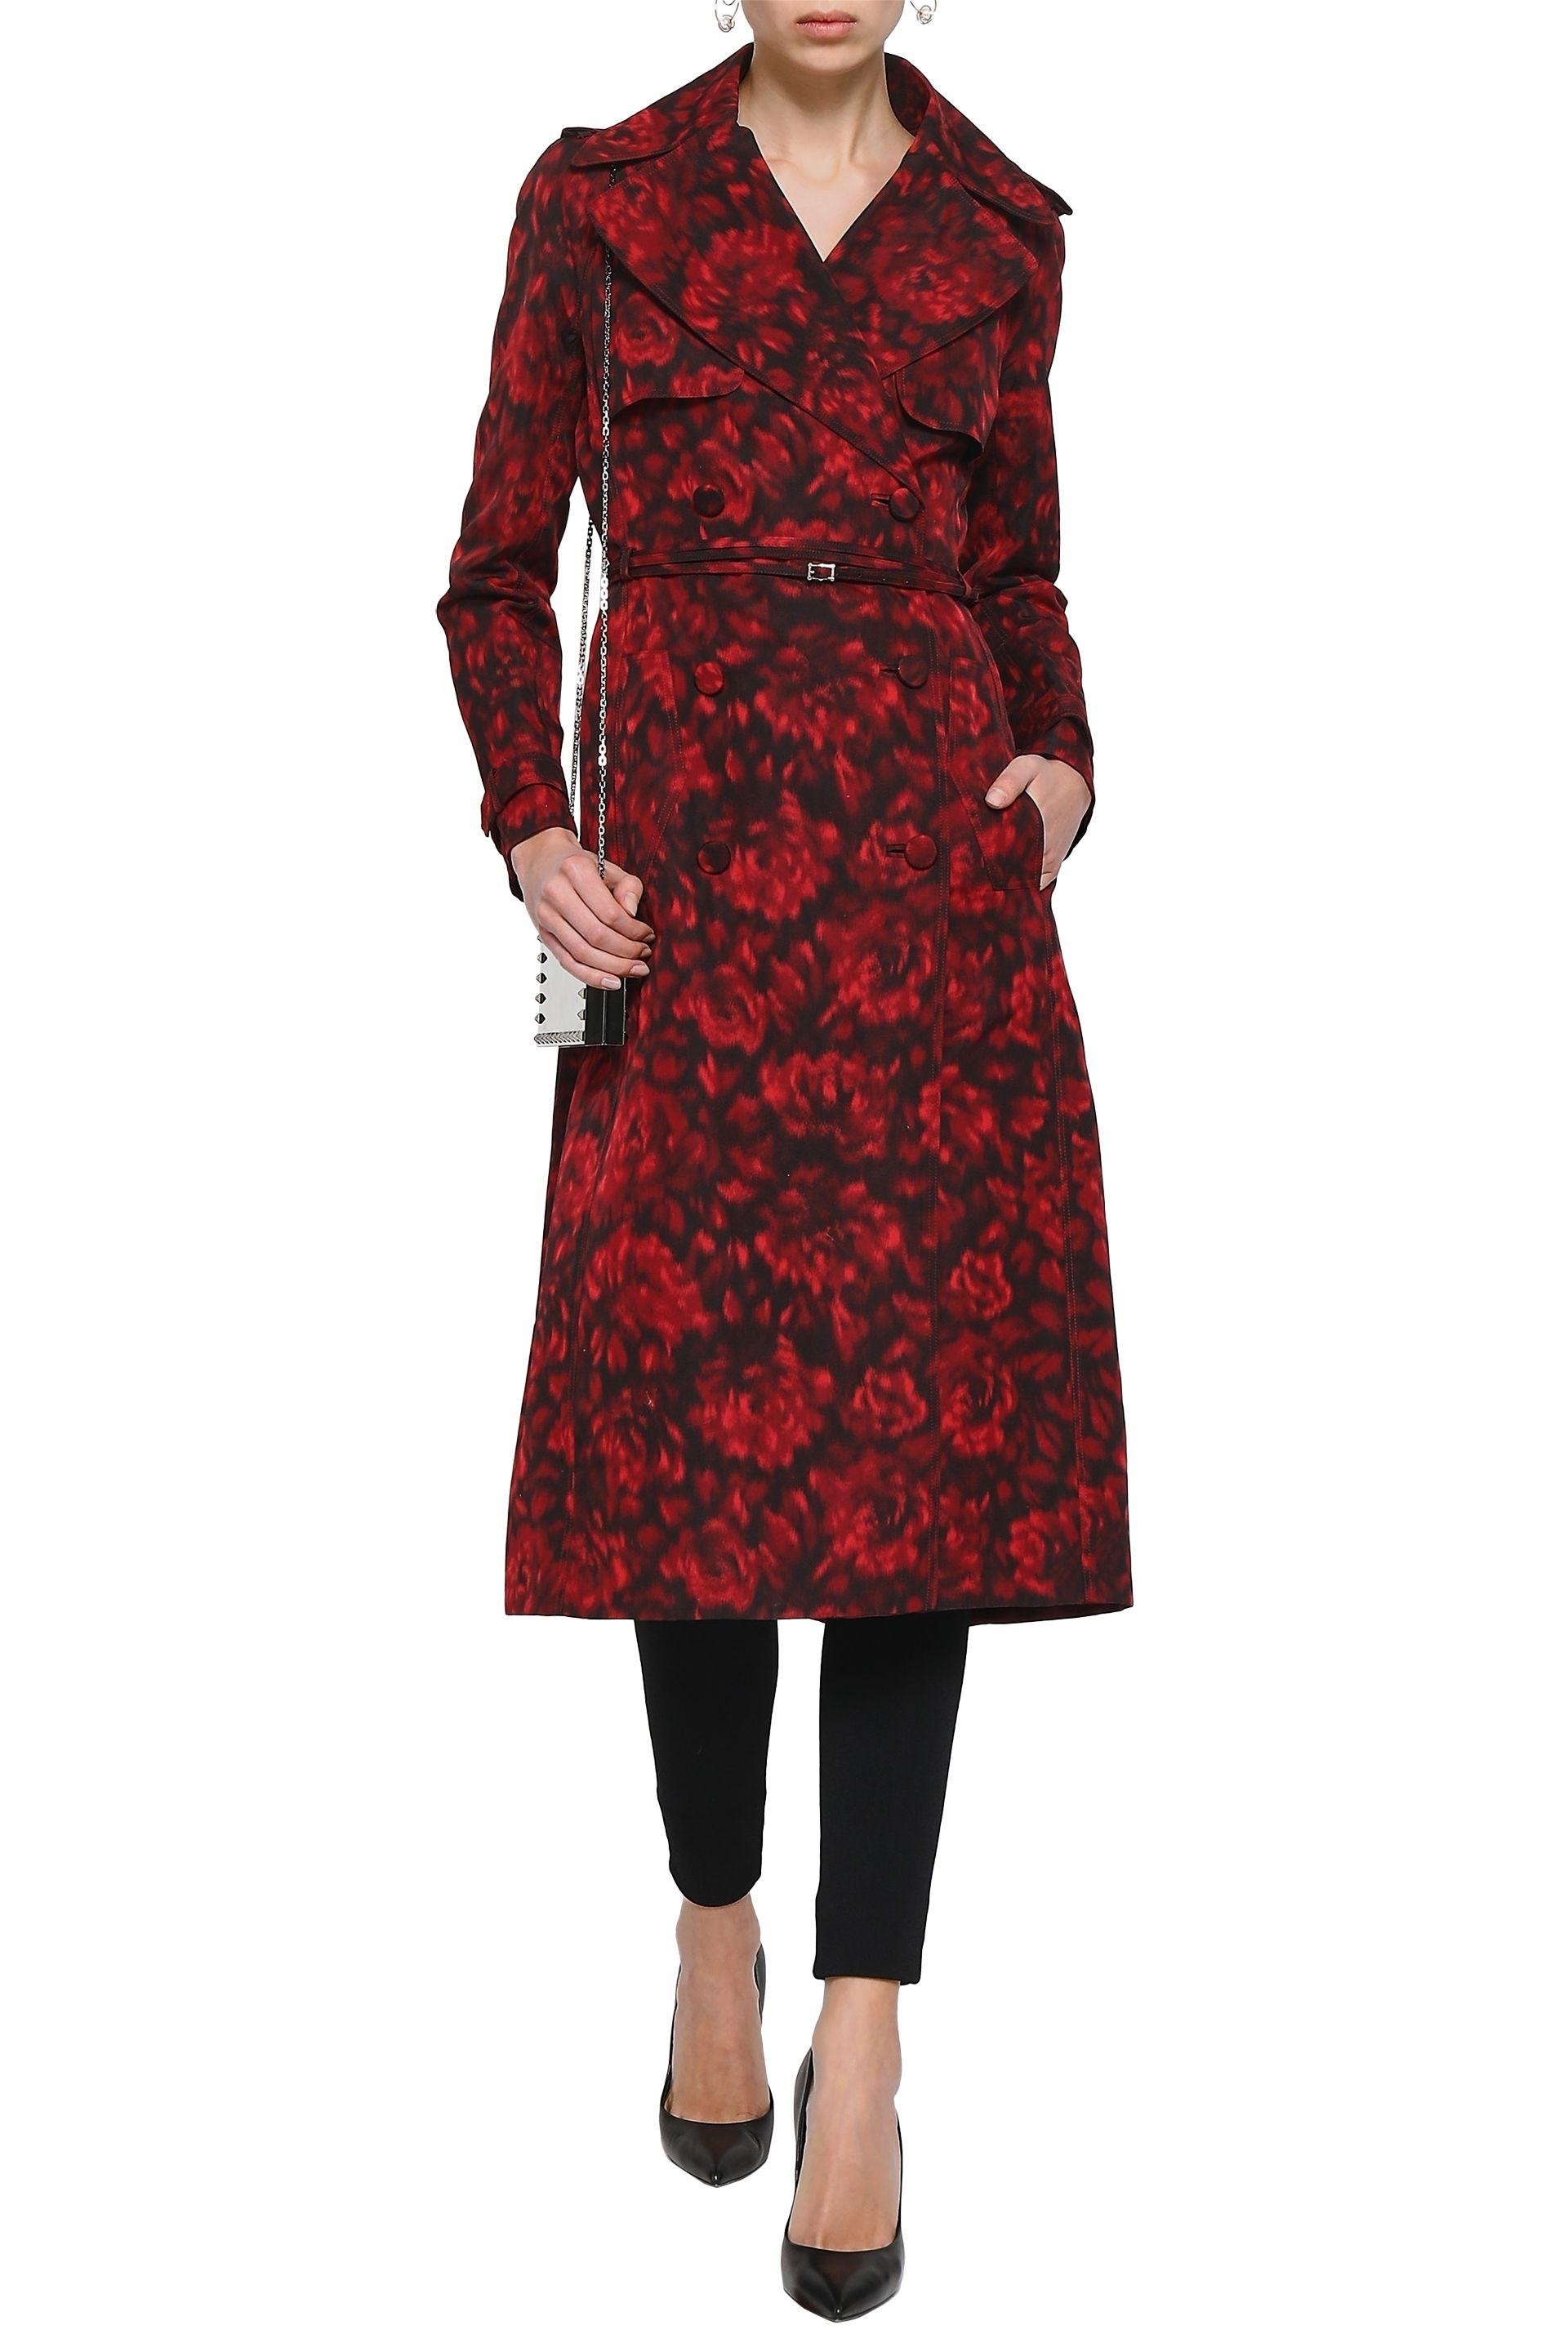 d4091e162f8 Valentino. Women's Red Woman Belted Printed Cotton And Silk-blend Trench  Coat Crimson